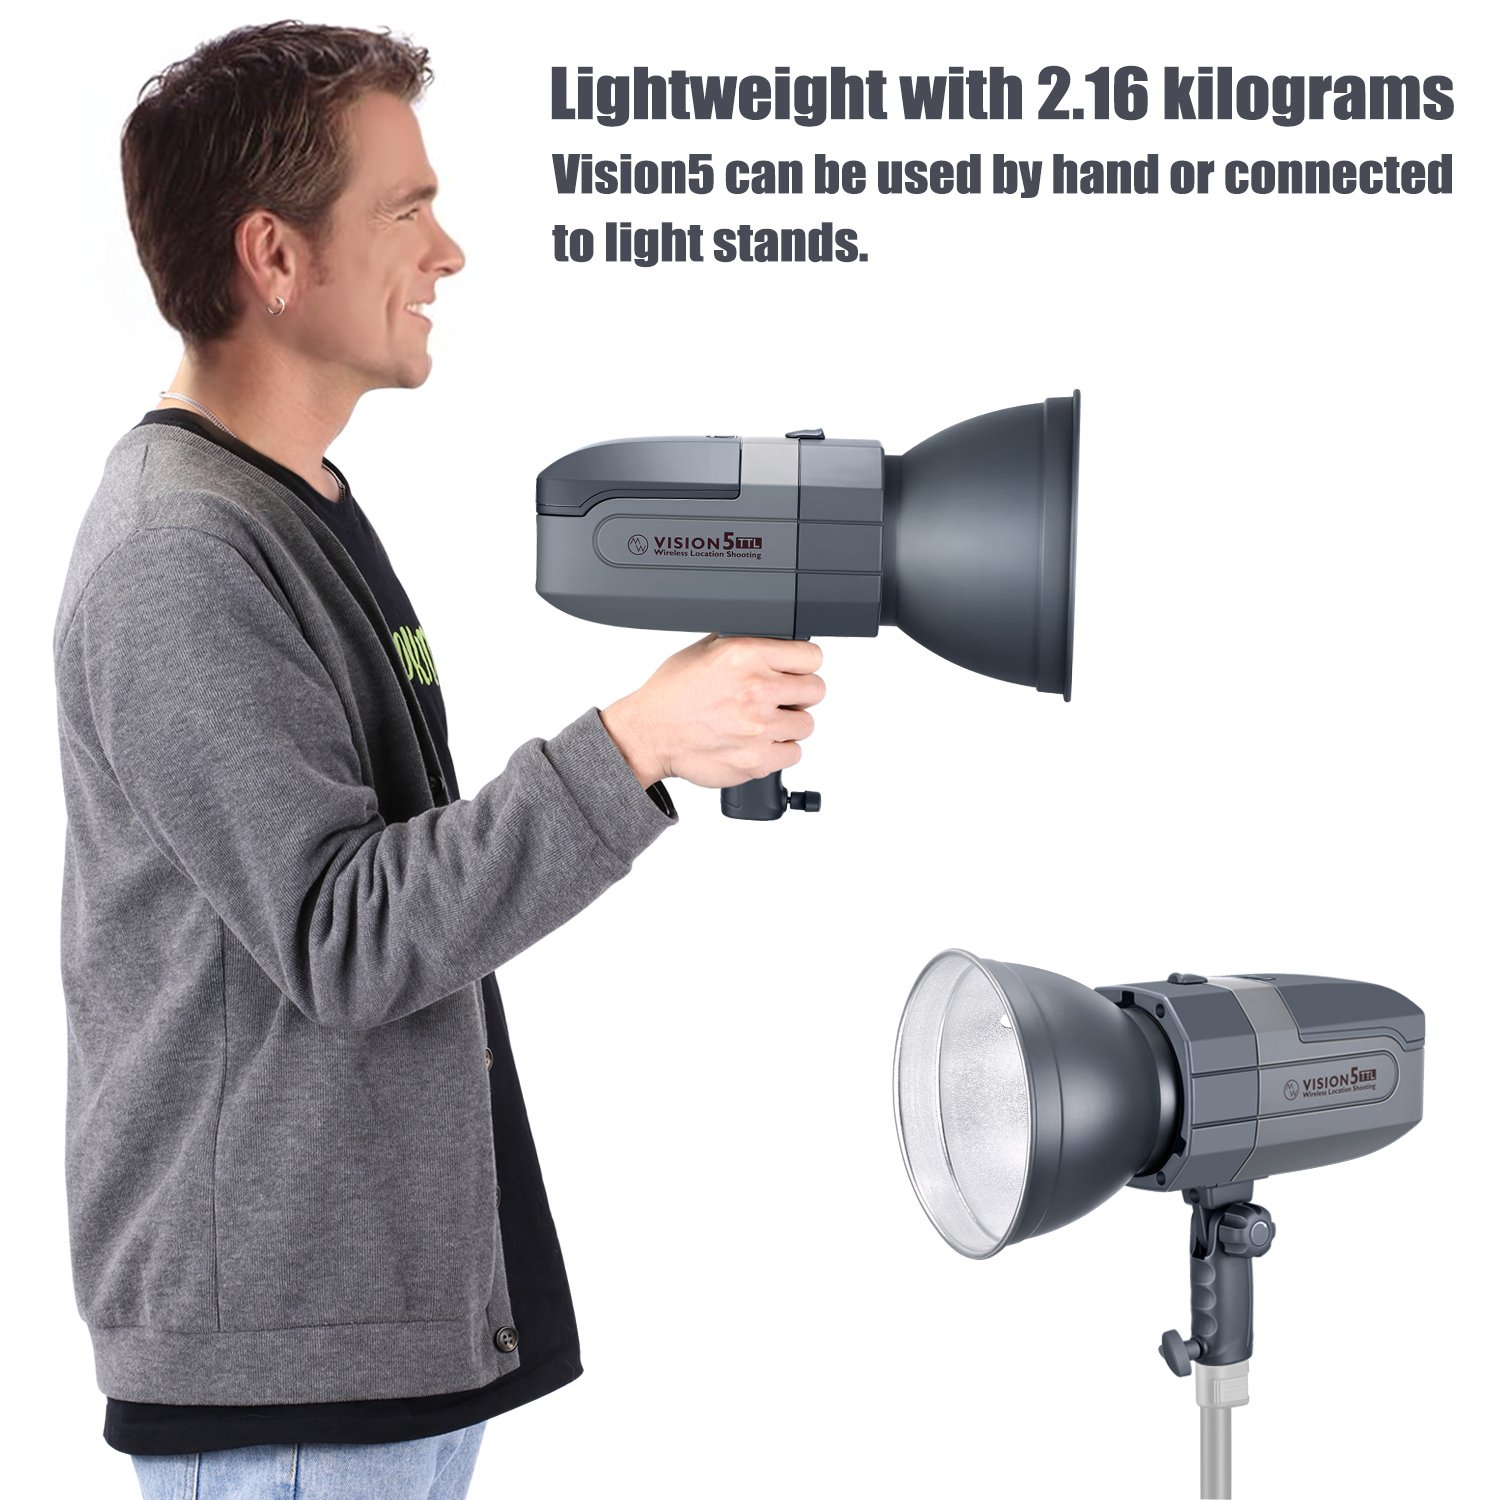 Neewer Vision5 400W TTL for NIKON HSS Outdoor Studio Flash Strobe with 2.4G System and Wireless Trigger,2 Packs Li-ion Battery(up to 500 Full Power Flashes),German Engineered,3.96 Pounds,Bowens Mount by Neewer (Image #7)